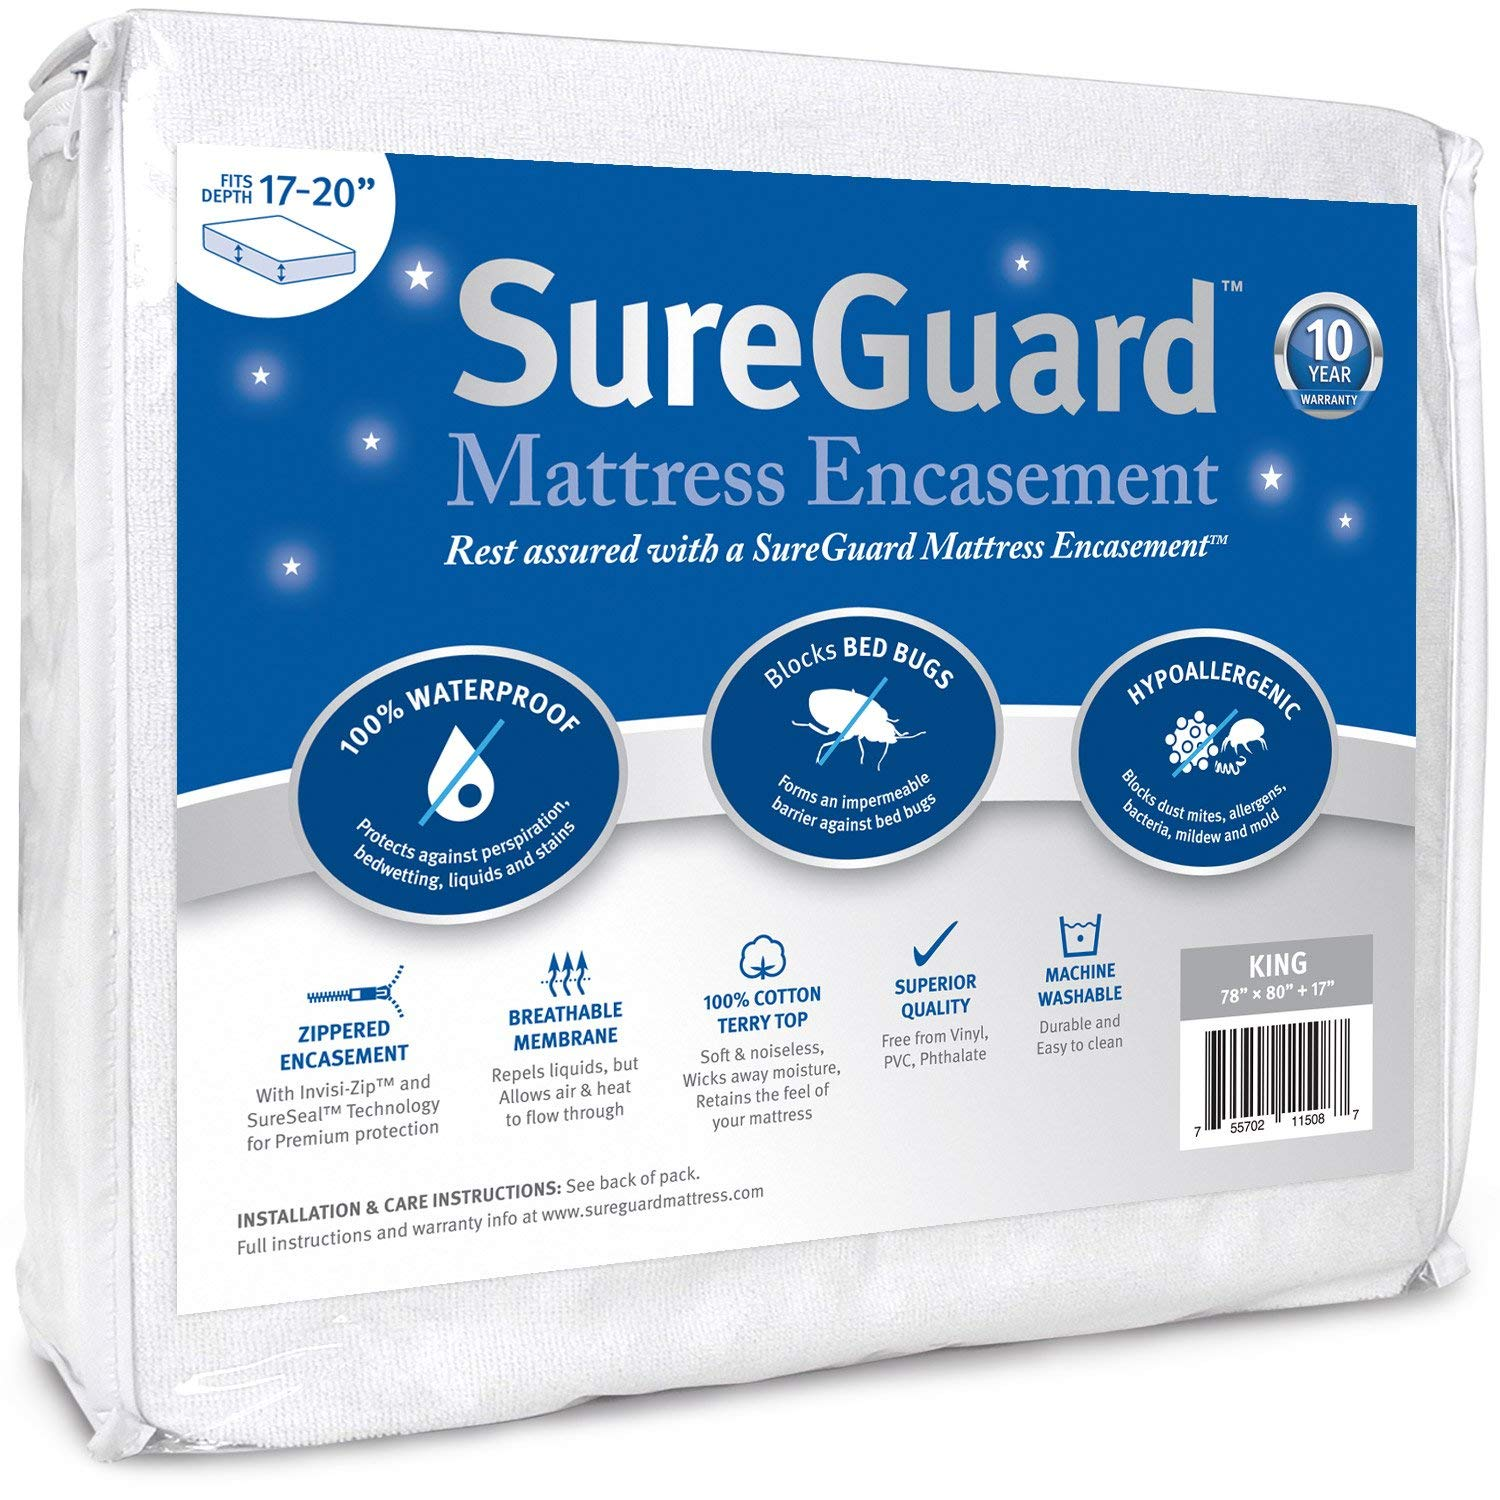 SureGuard Mattress Encasement